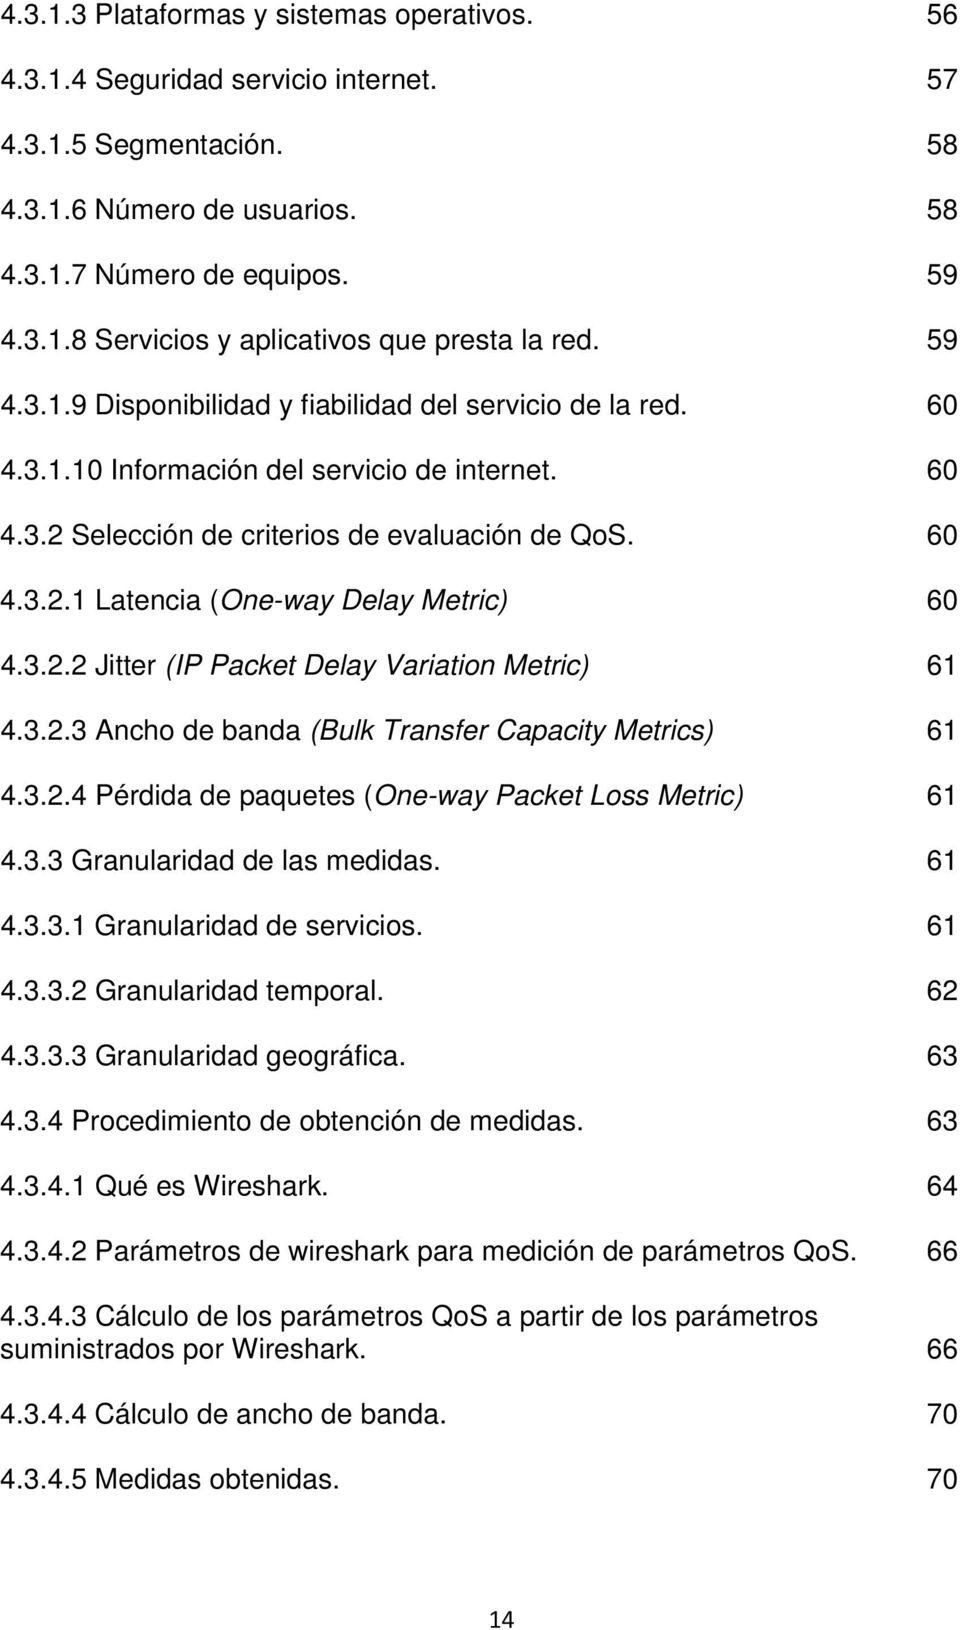 3.2.2 Jitter (IP Packet Delay Variation Metric) 61 4.3.2.3 Ancho de banda (Bulk Transfer Capacity Metrics) 61 4.3.2.4 Pérdida de paquetes (One-way Packet Loss Metric) 61 4.3.3 Granularidad de las medidas.